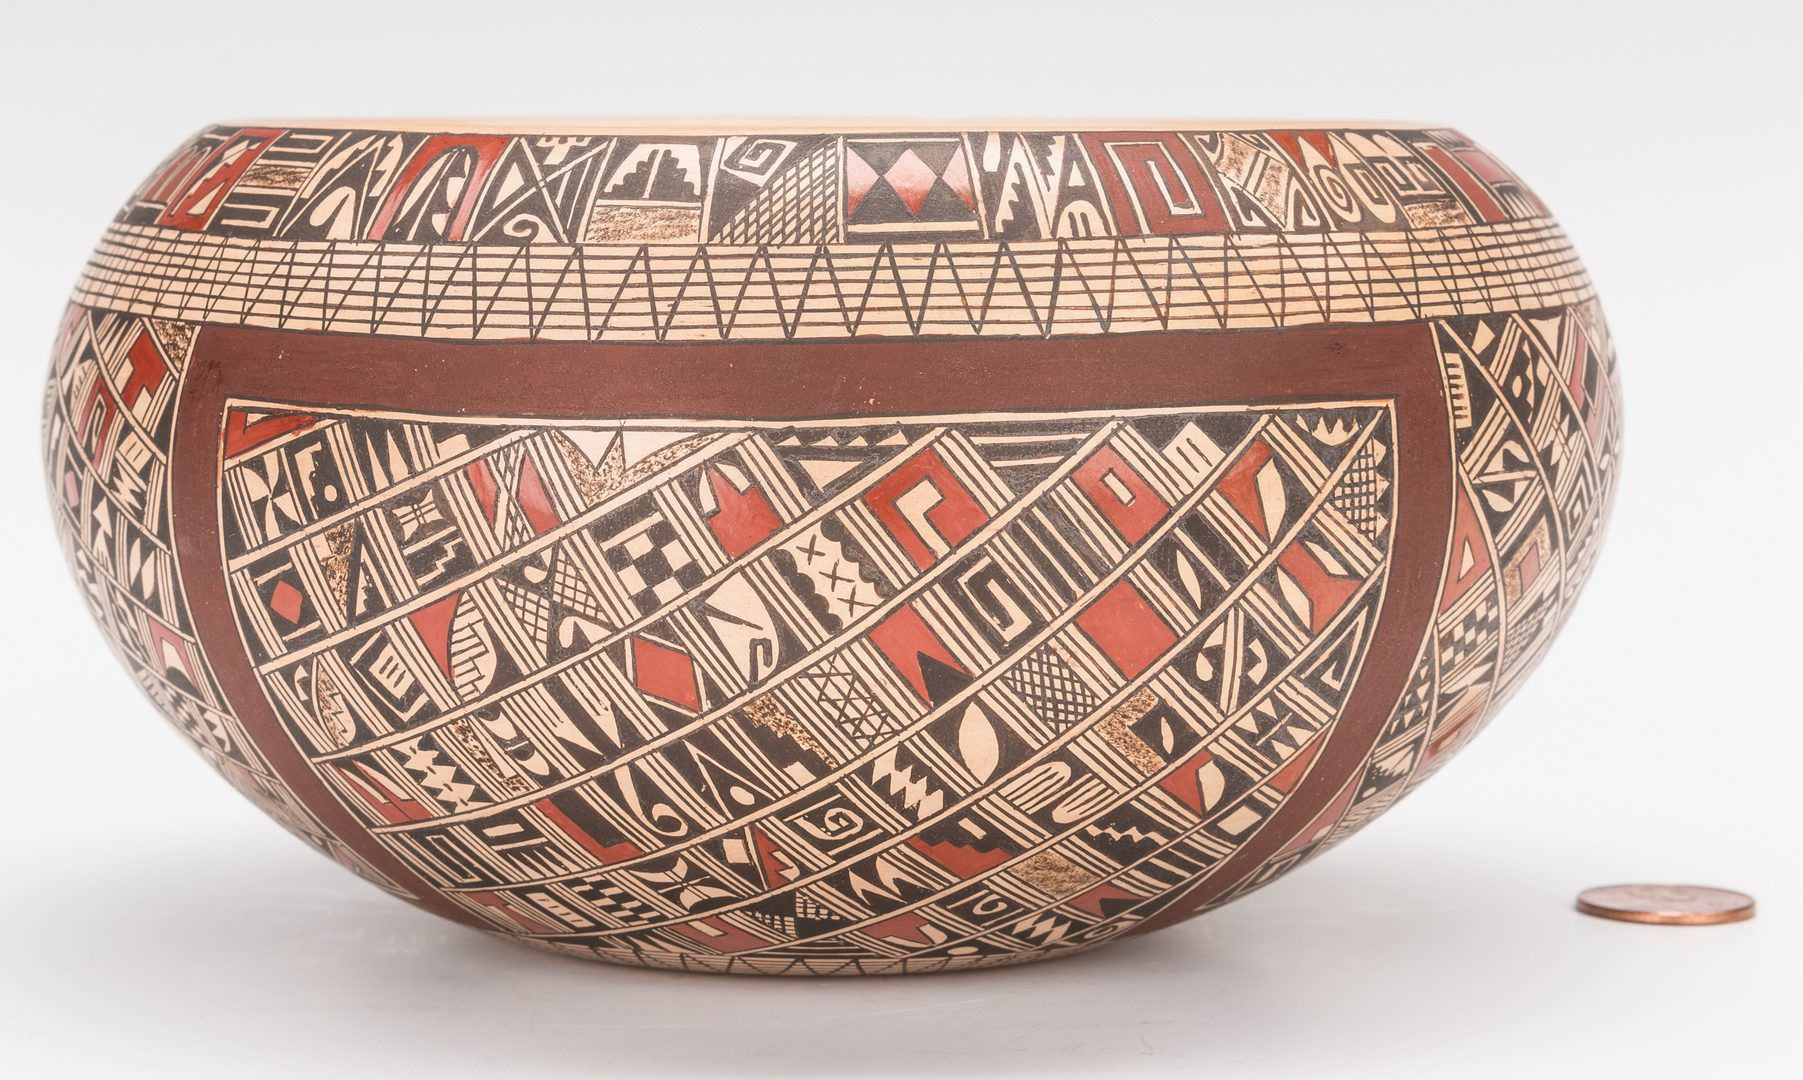 Lot 700: Rondina Huma Hopi Pottery Bowl